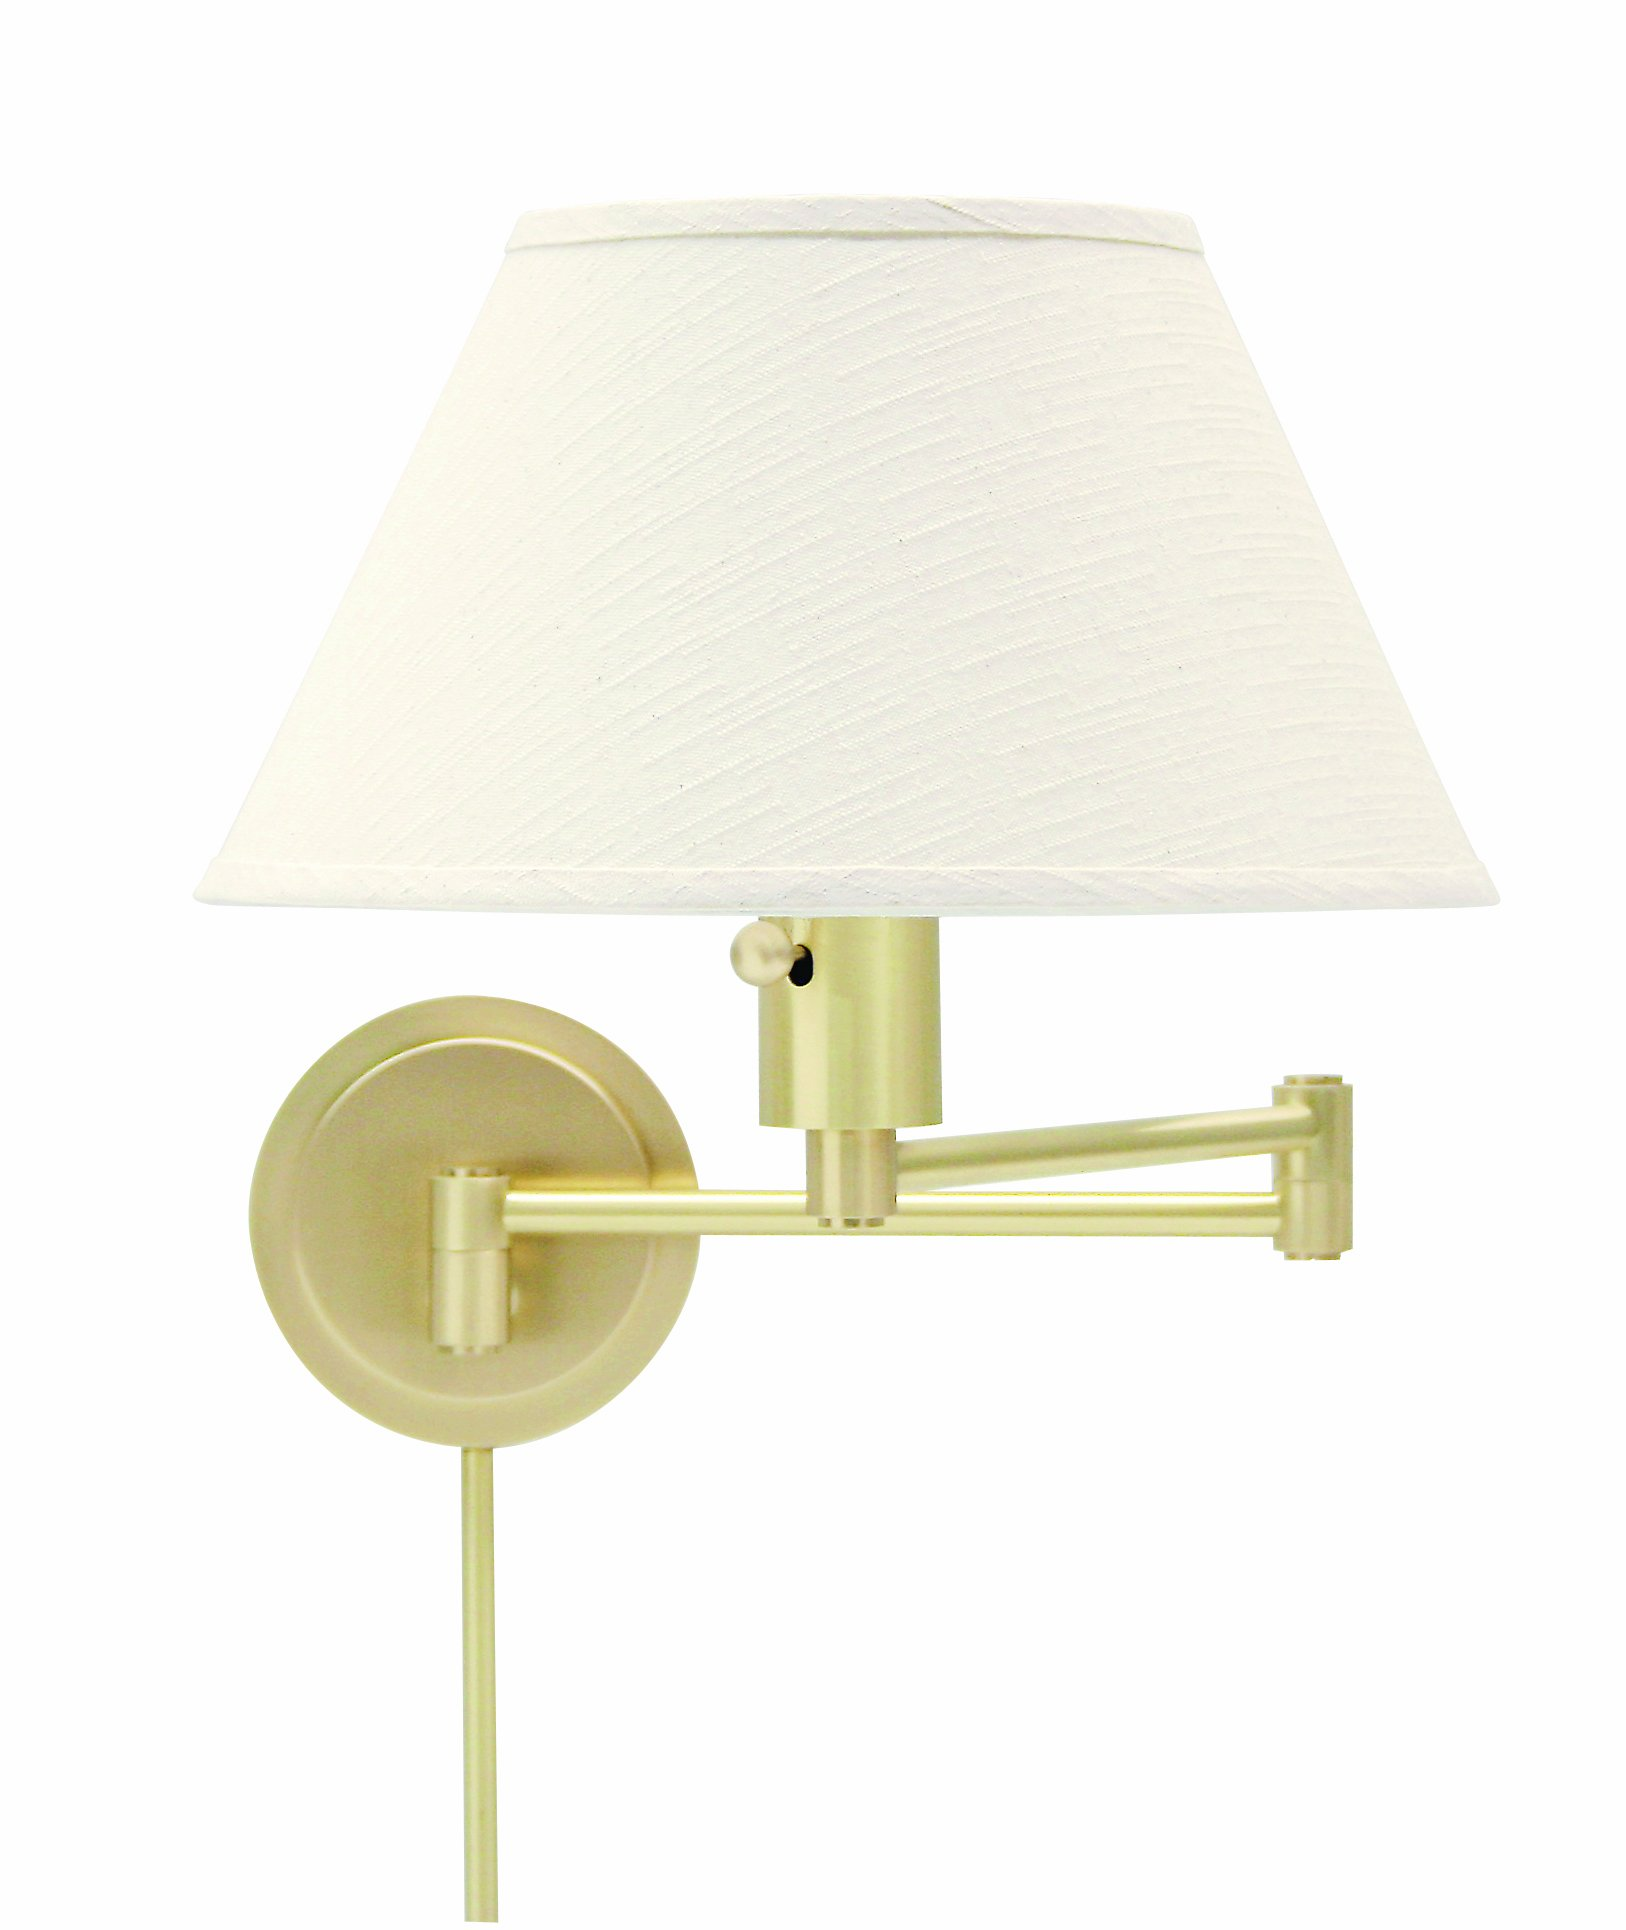 House Of Troy WS14-51 Home/Office Collection Swing-Arm Wall Lamp, Satin Brass with Off-White Linen Hardback Shade